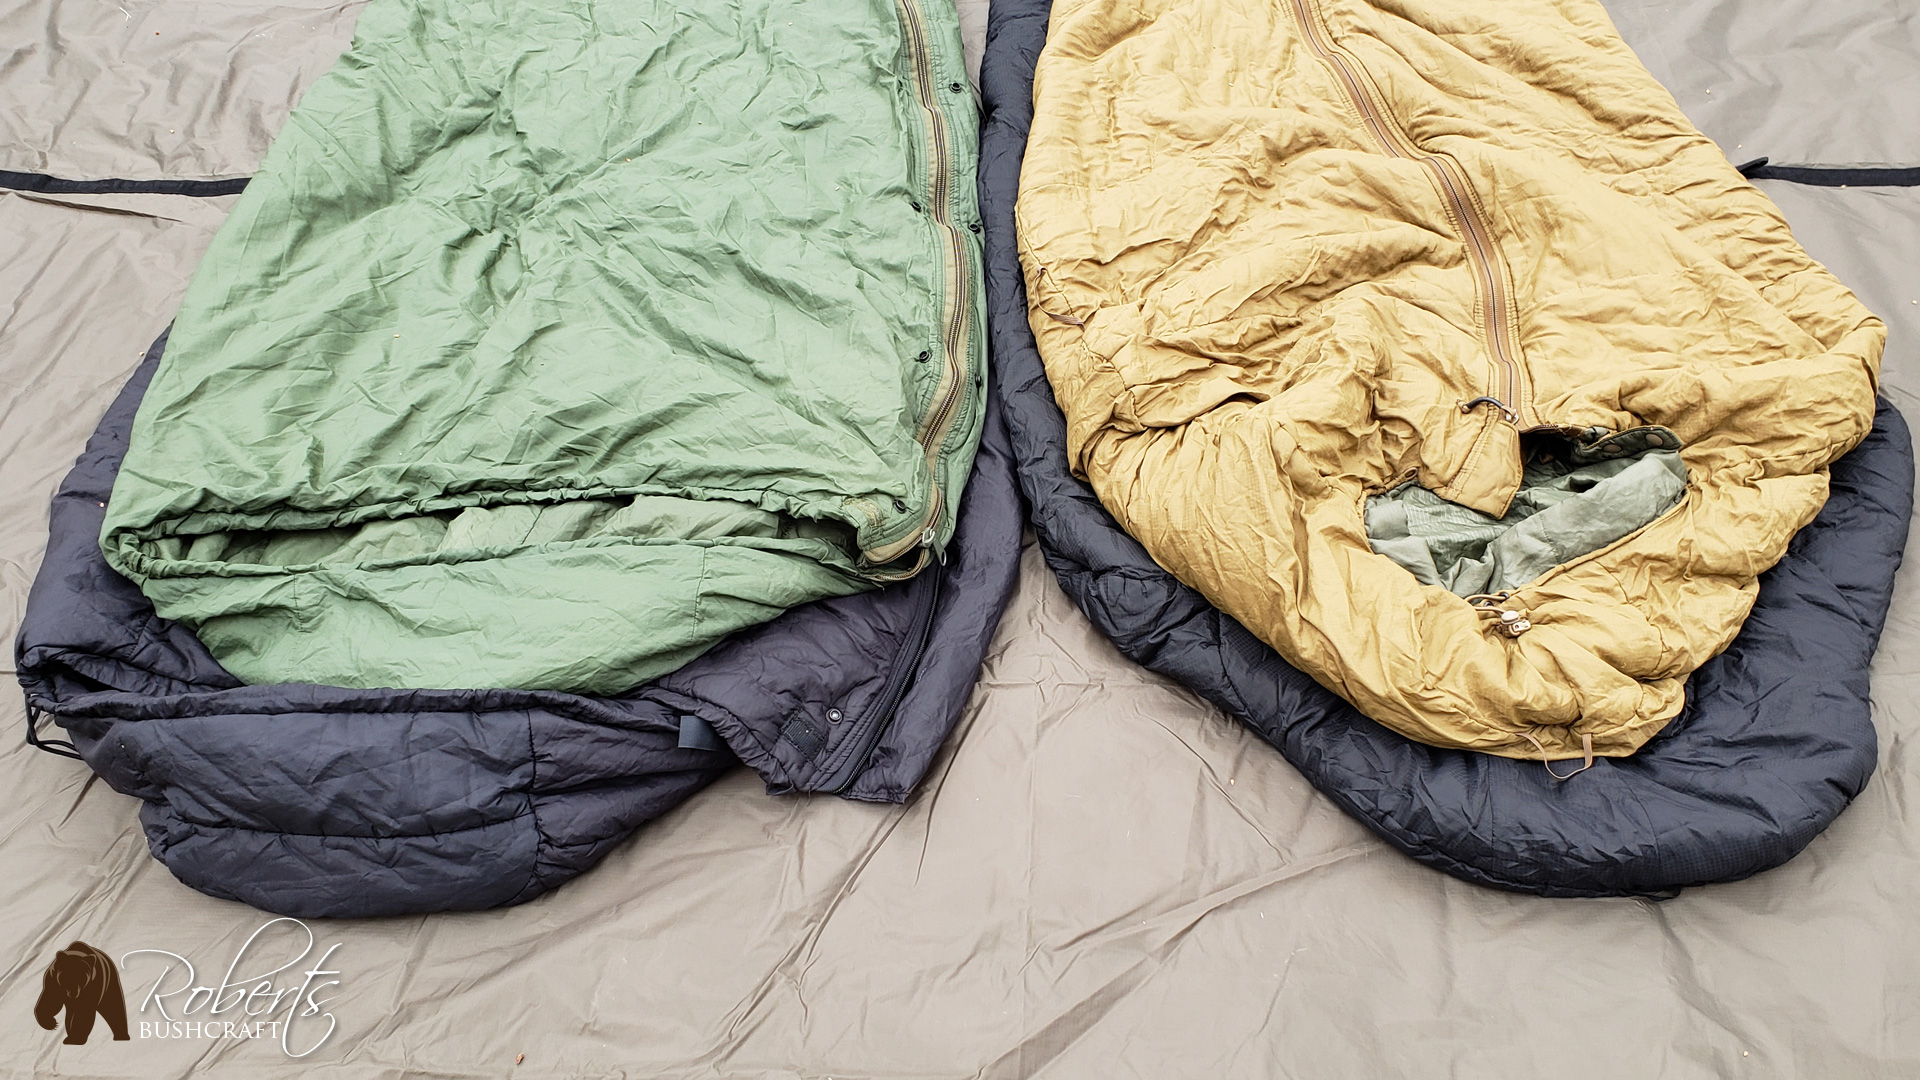 USMC 3 Season Sleeping Bag vs. Military Modular Sleeping System Bag